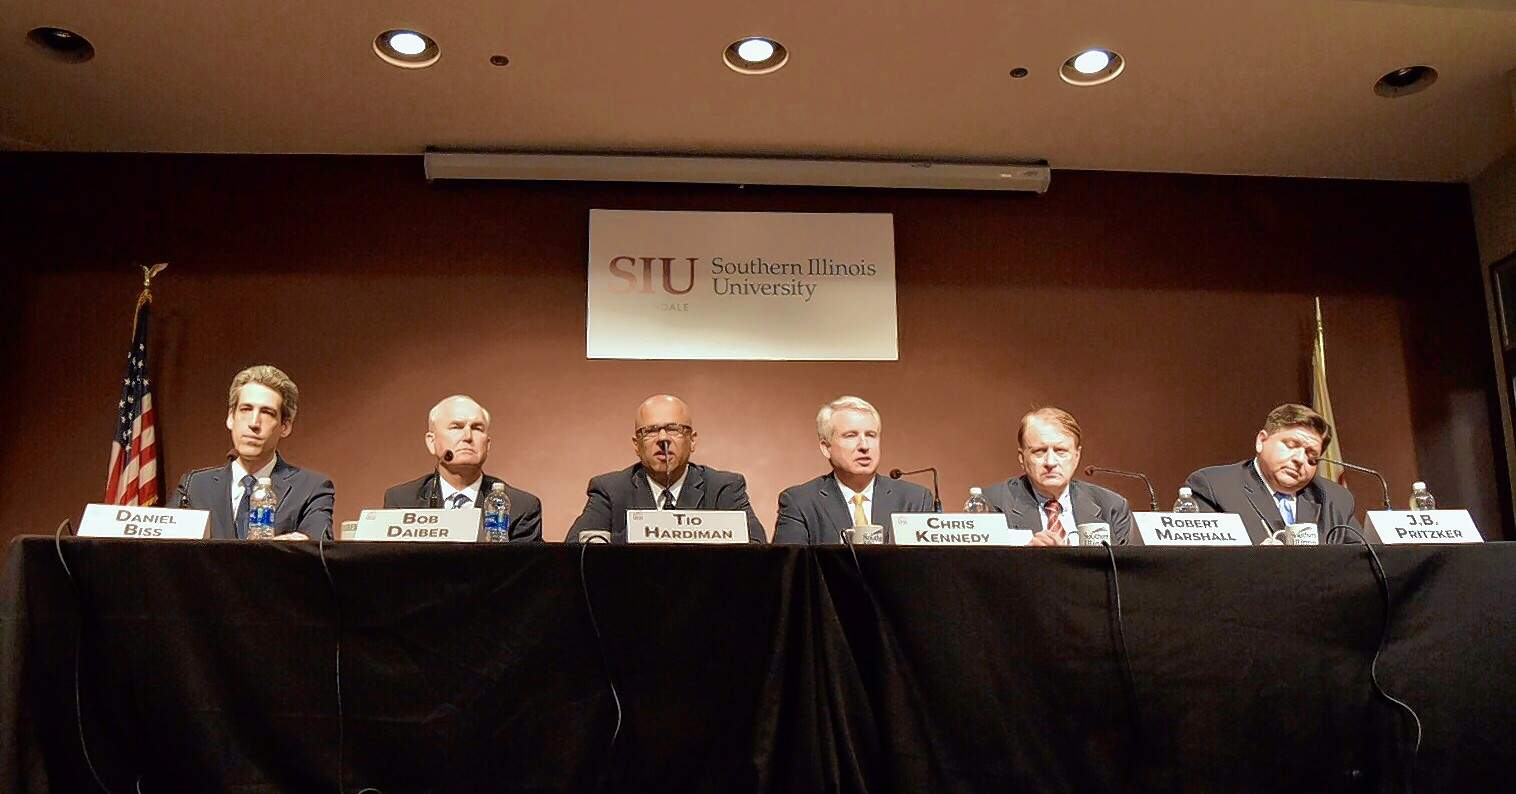 The Democratic candidates for Illinois governor are (from left to right) Daniel Biss, Bob Daiber, Tio Hardiman, Chris Kennedy, Robert Marshall and J.B. Pritzker. The six met Tuesday for a forum at the SIU Student Center.